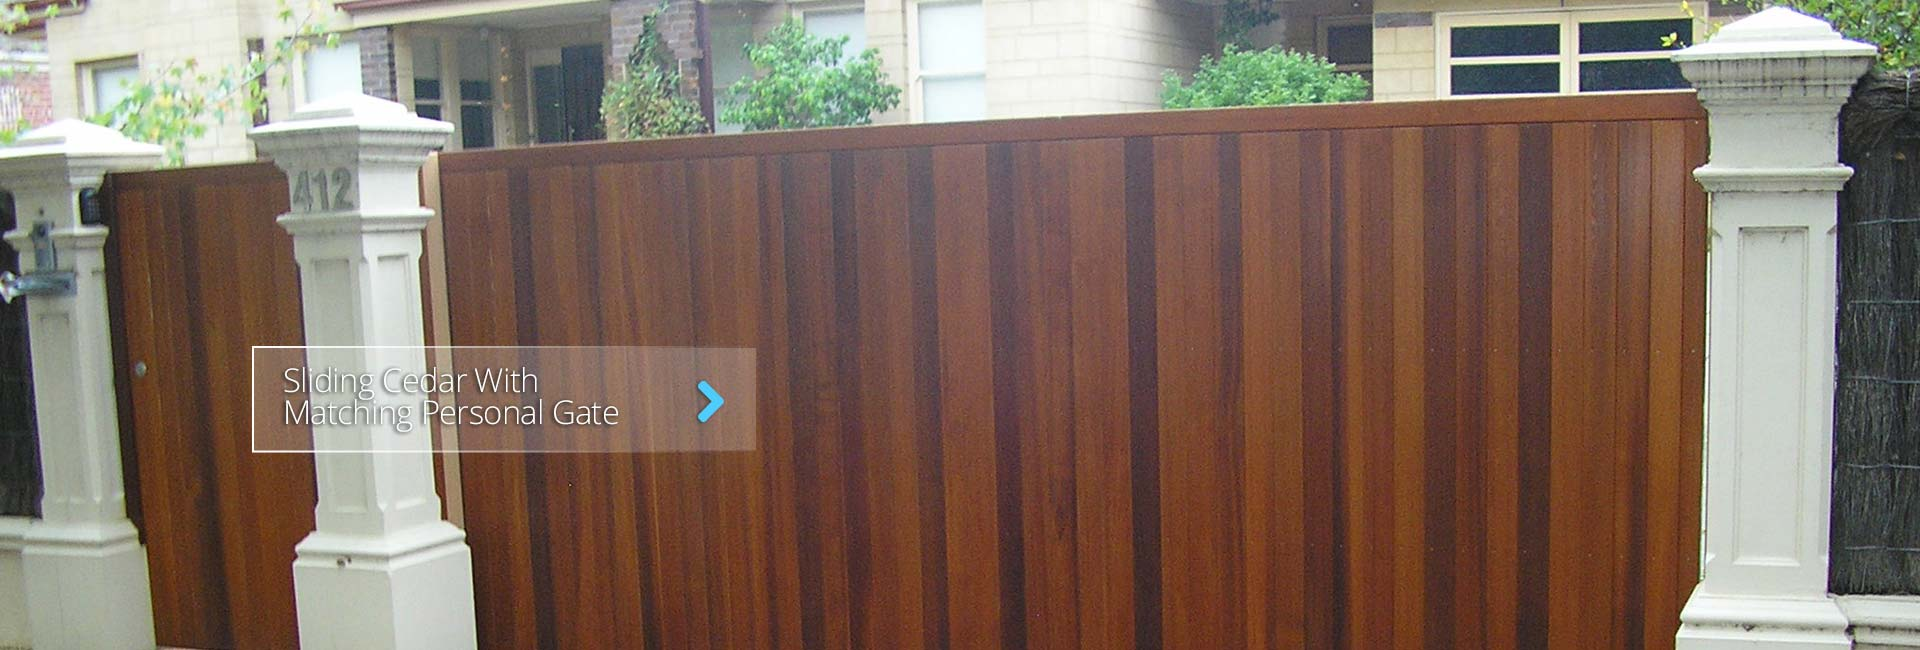 Custom Made Gates Hot Tubs Adelaide